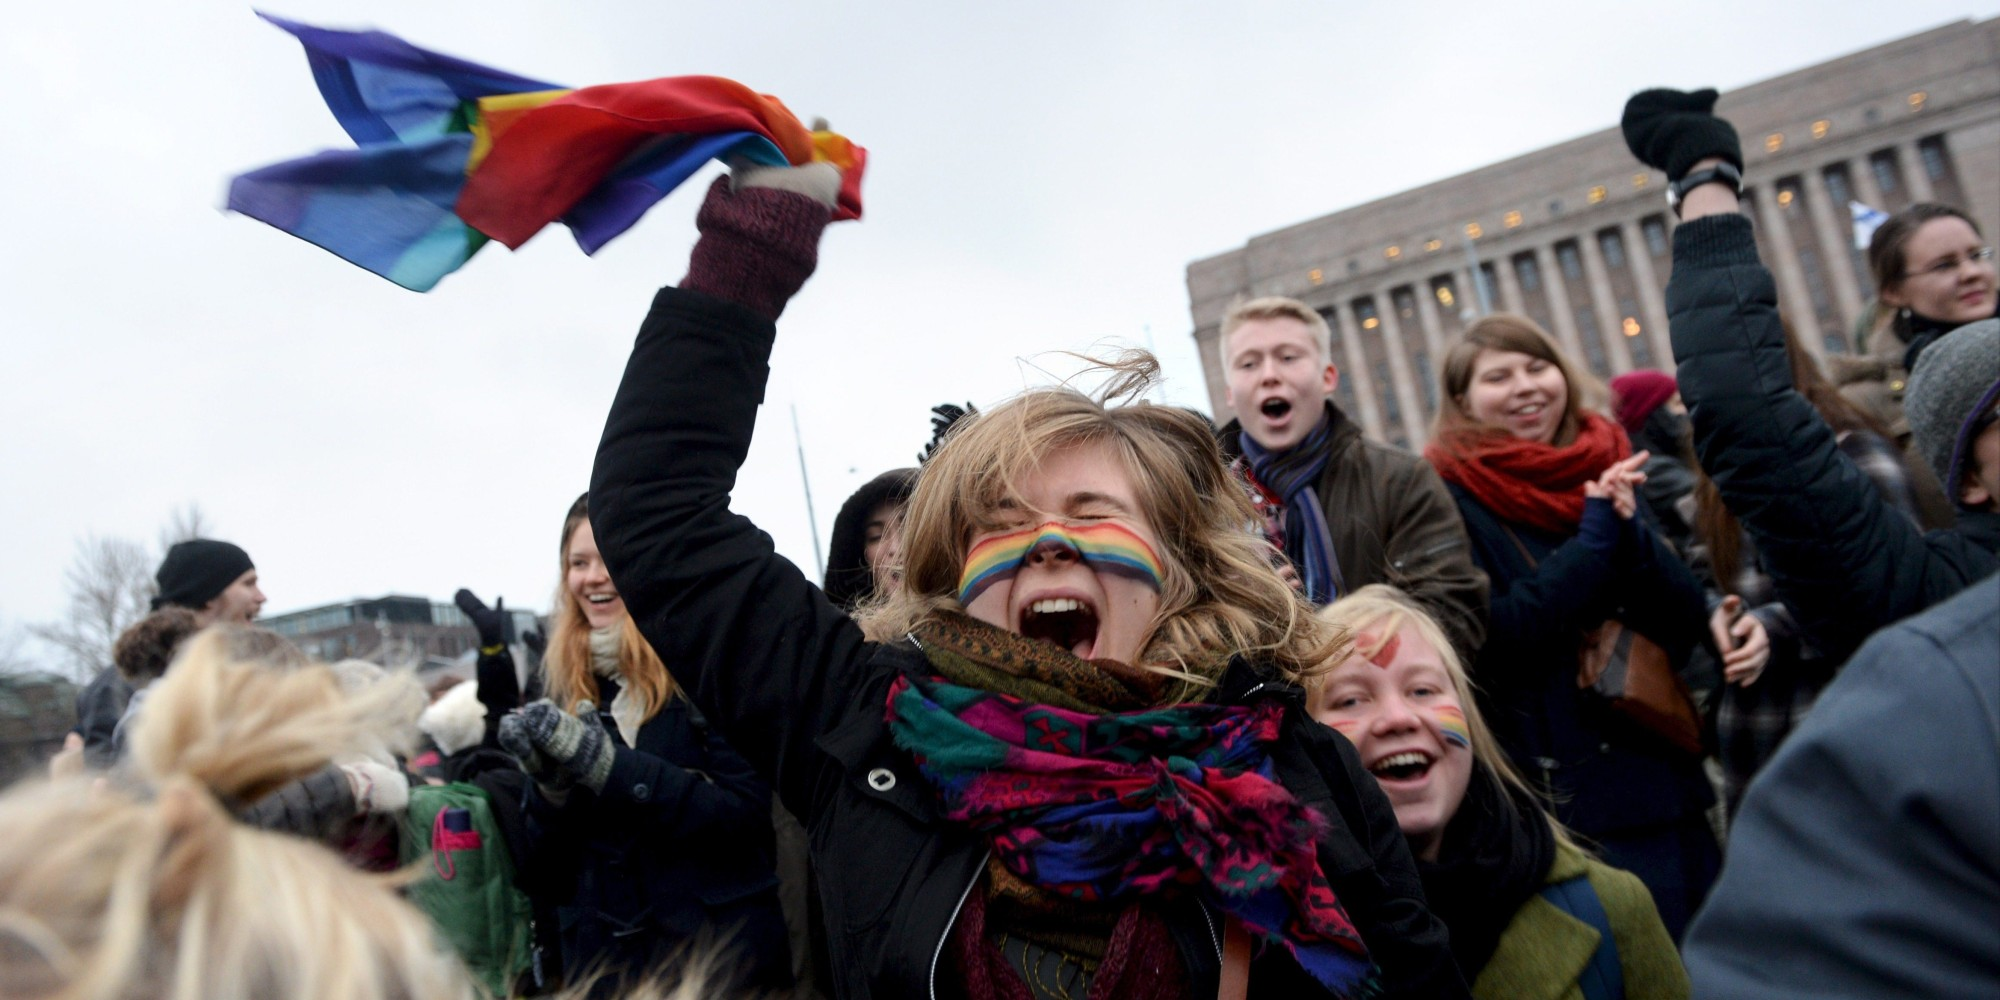 finnish parliament voted on gay marriage